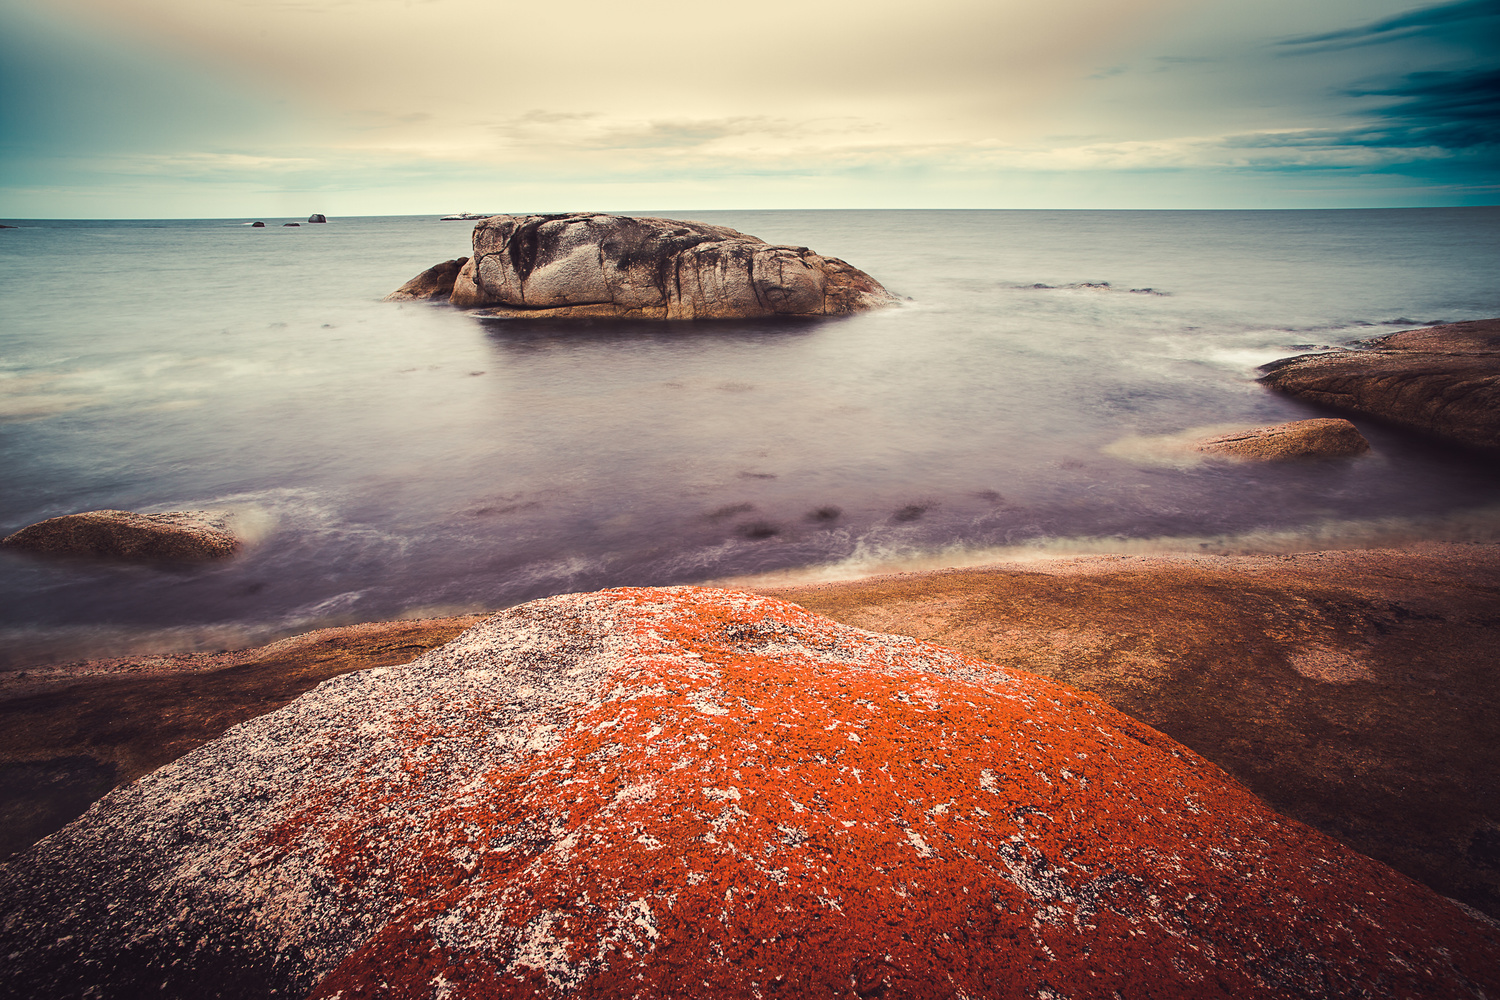 Seascapes, long exposures, slow shutter speed, landscape